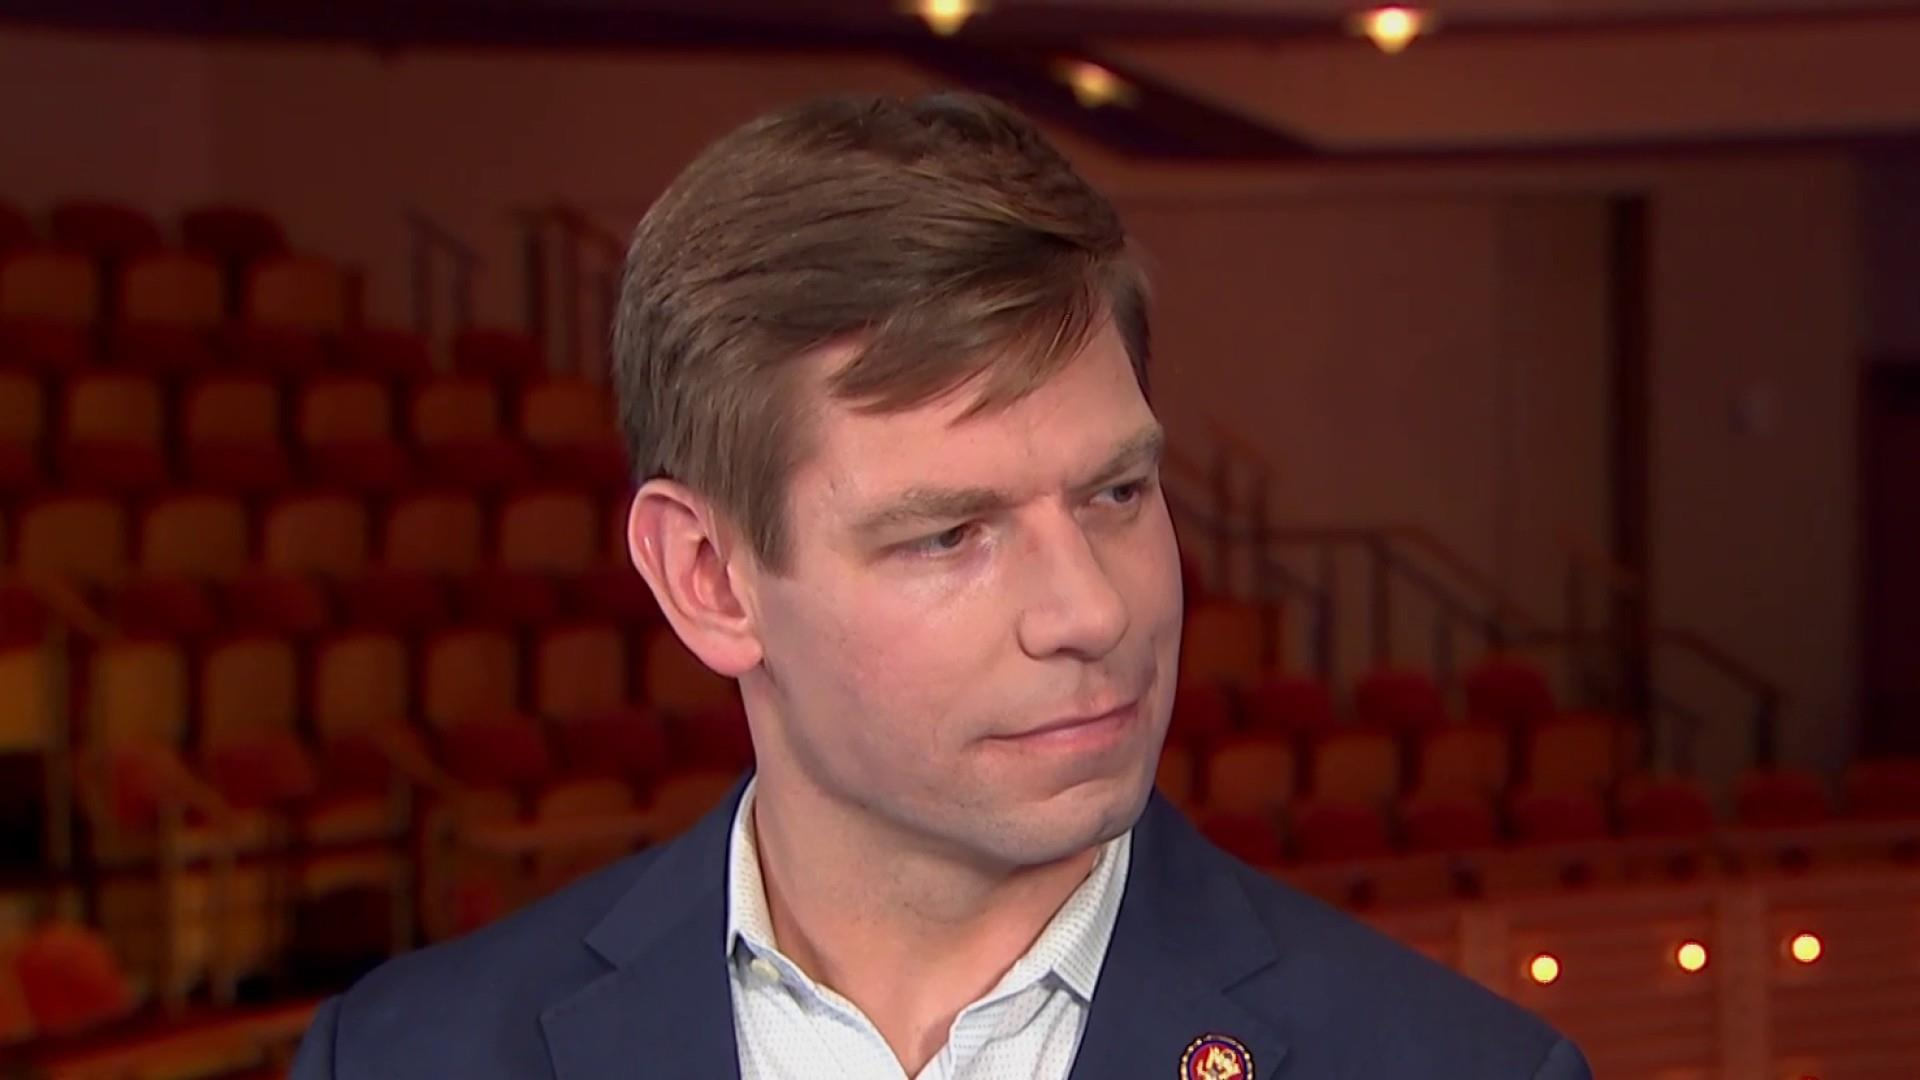 Rep. Swalwell on why his age will help him in the debate